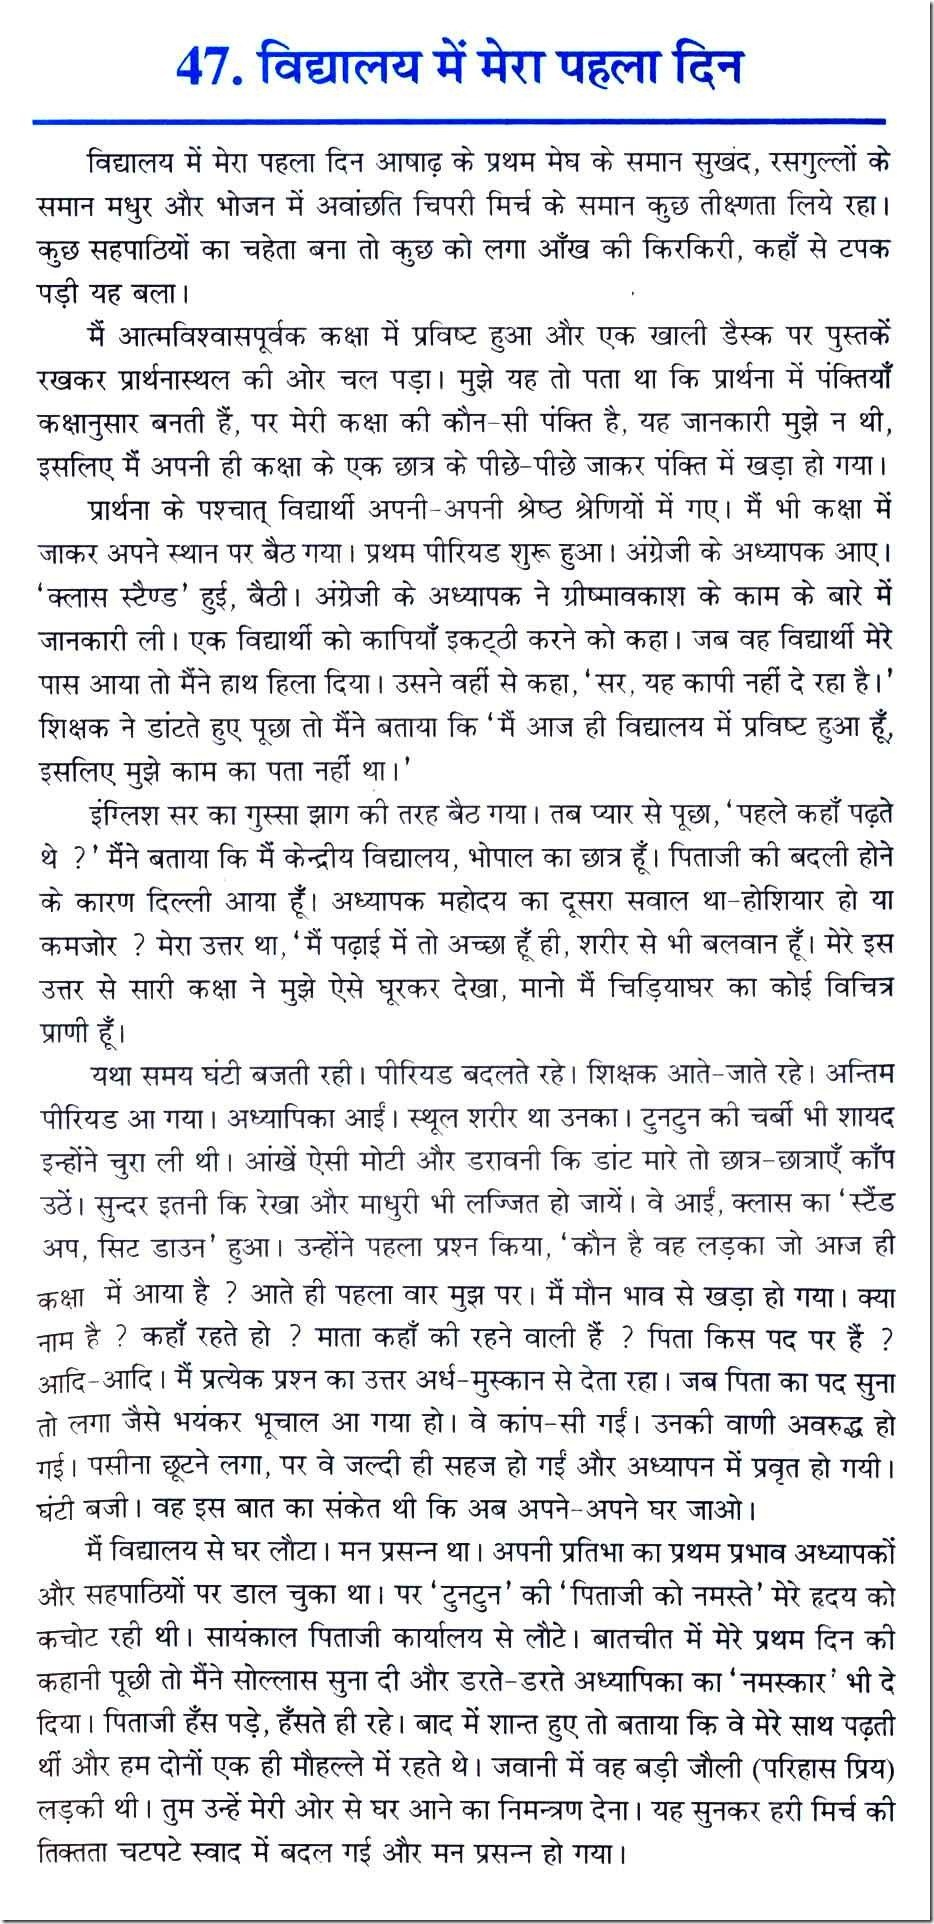 020 0020047 Thumb Short Essay On Leadership Awesome About Experience Transformational In Hindi Full